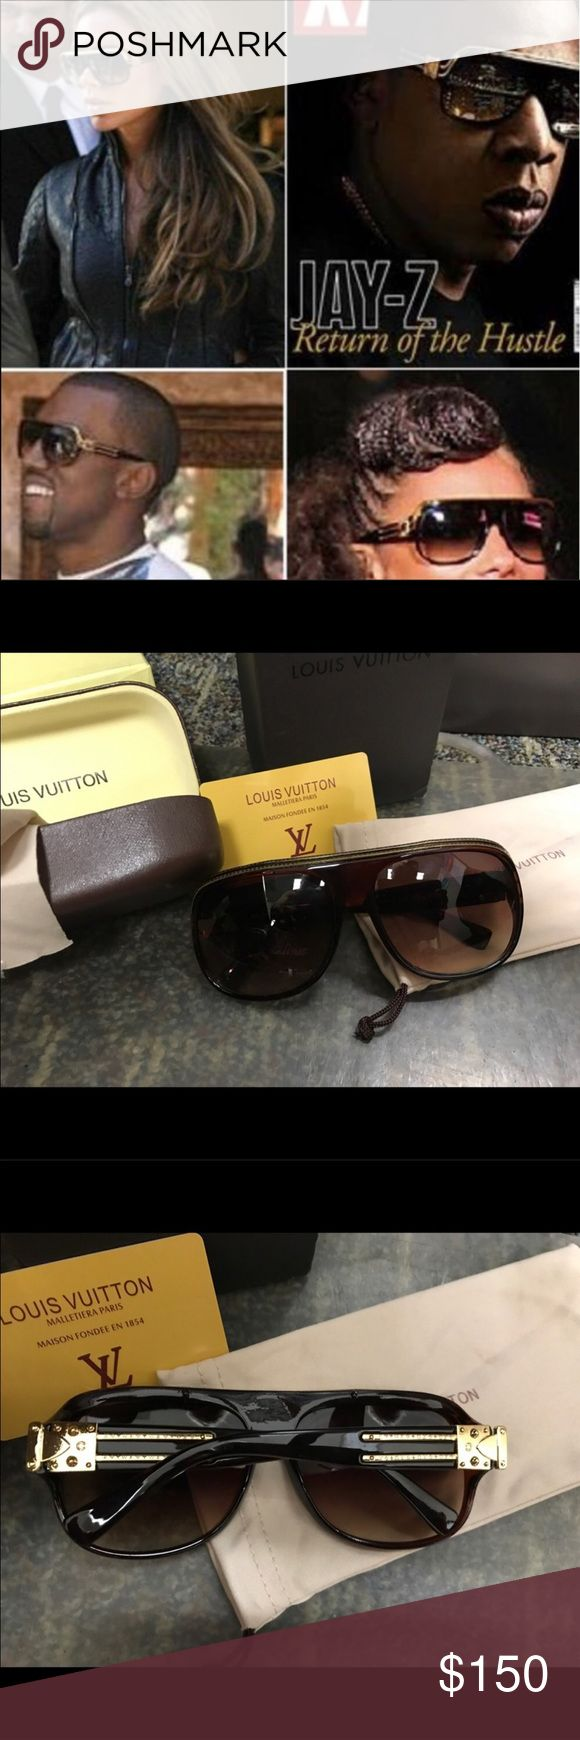 LV Millionaire sunglasses Comes with box, auth card, cleaning cloth, soft and hard case! Price reflective please ask any questions before purchase. 😎 NEW Louis Vuitton Accessories Sunglasses